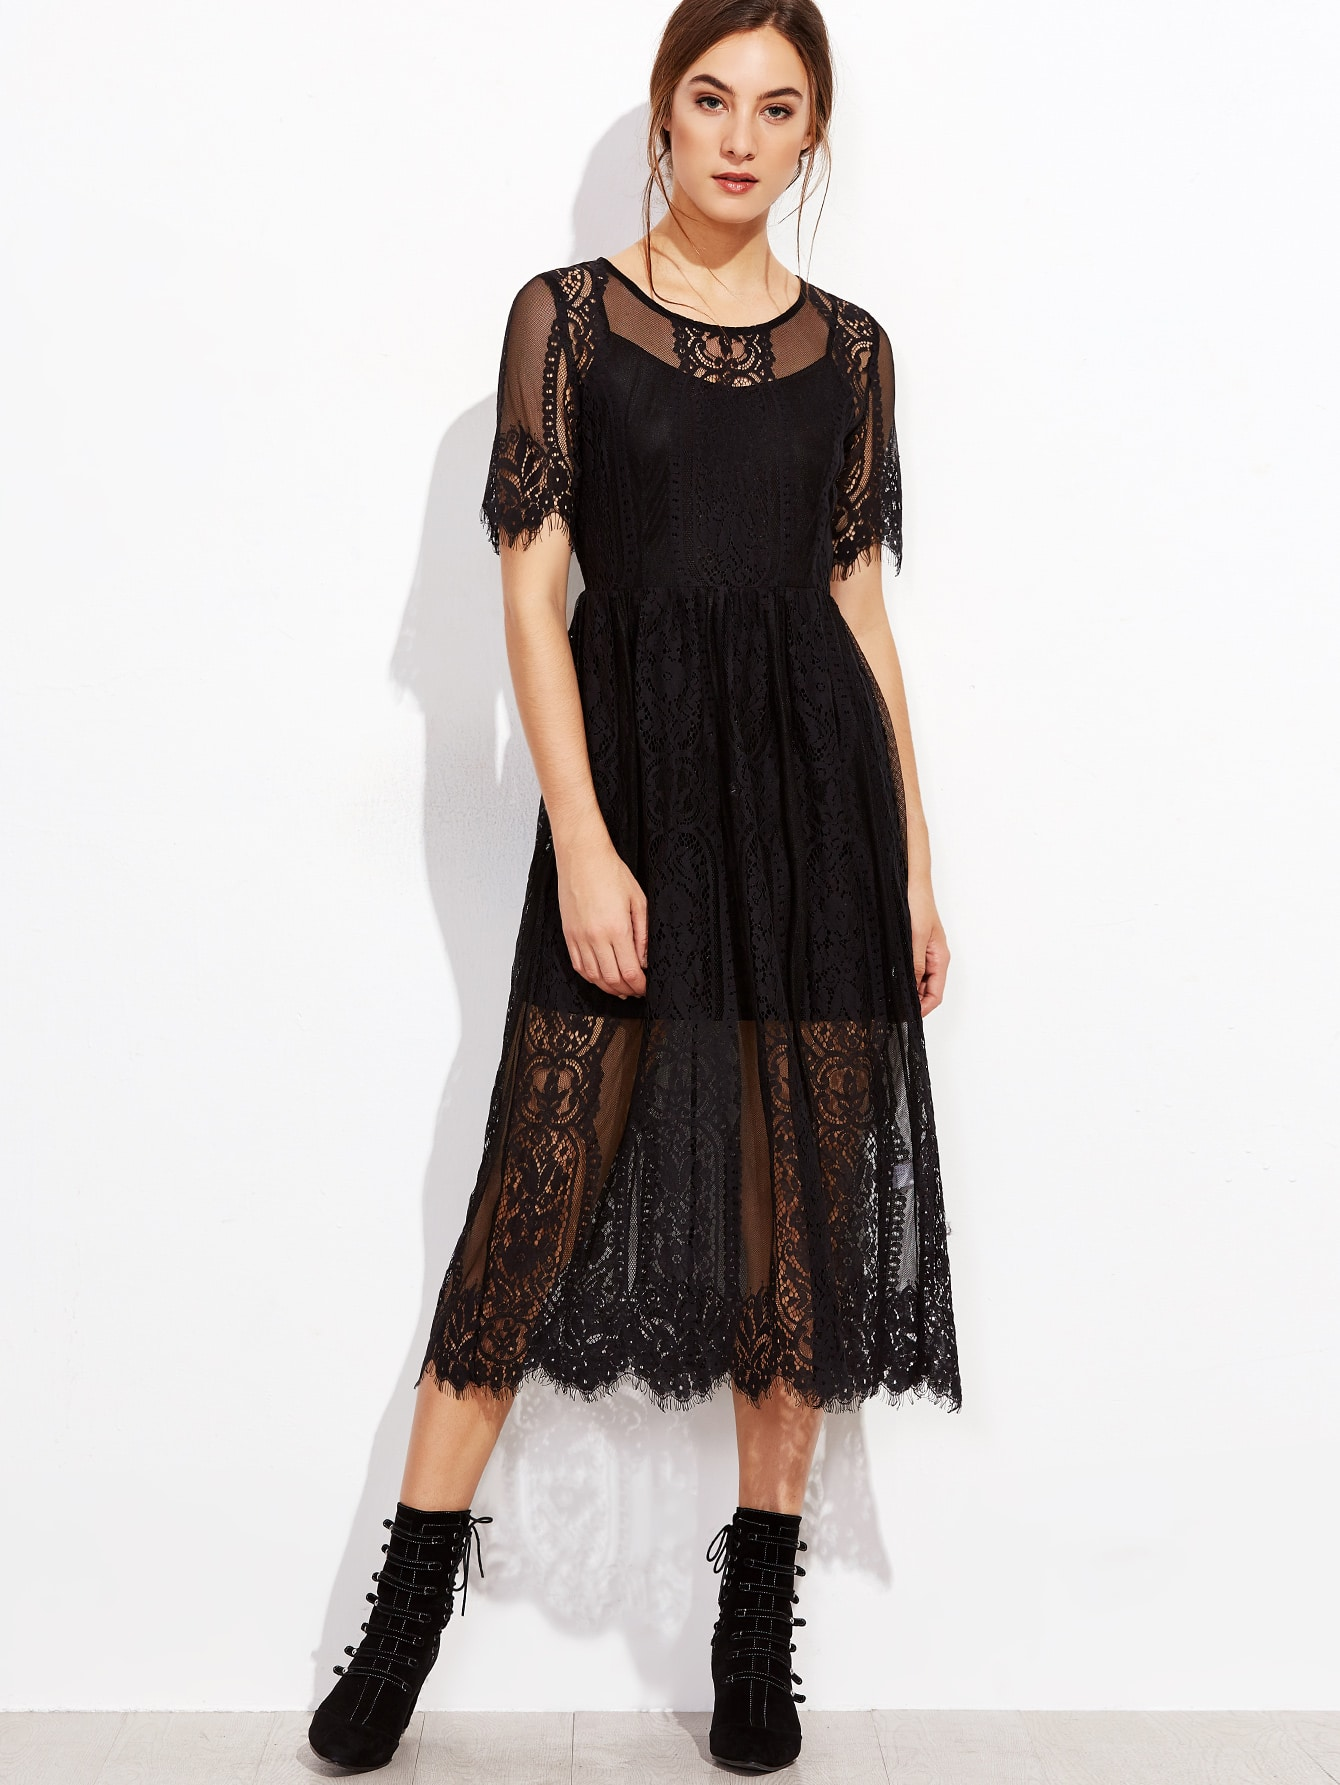 Black Zipper Back Lace Dress With Cami Top twopiece161013701